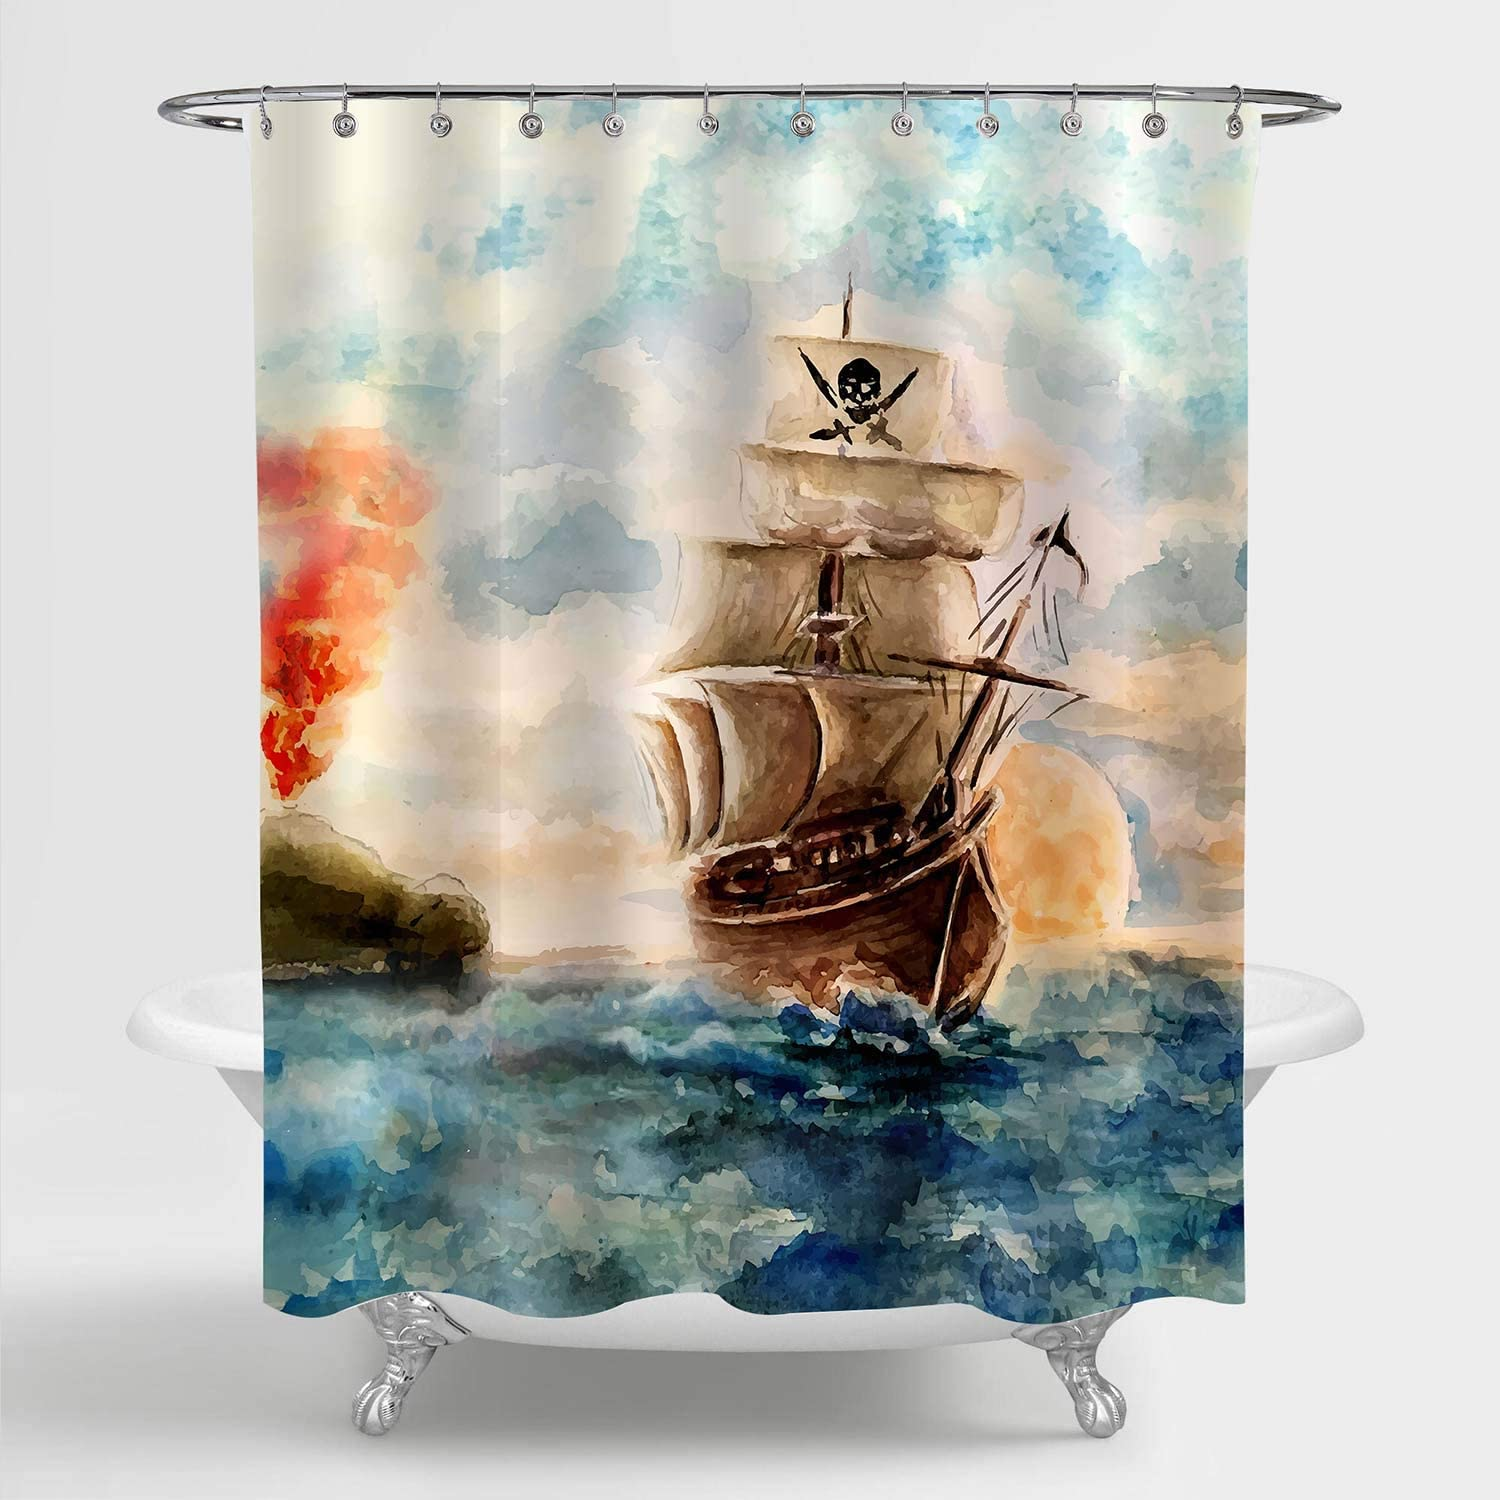 "MitoVilla Nautical Sailboat Shower Curtain, Watercolor Caribbean Pirate Ship Cruises in Treasure Adventure Bathroom Decor for Children and Kids Boy Nautical Gifts, Blue Brown, 72"" W x 72"" L"